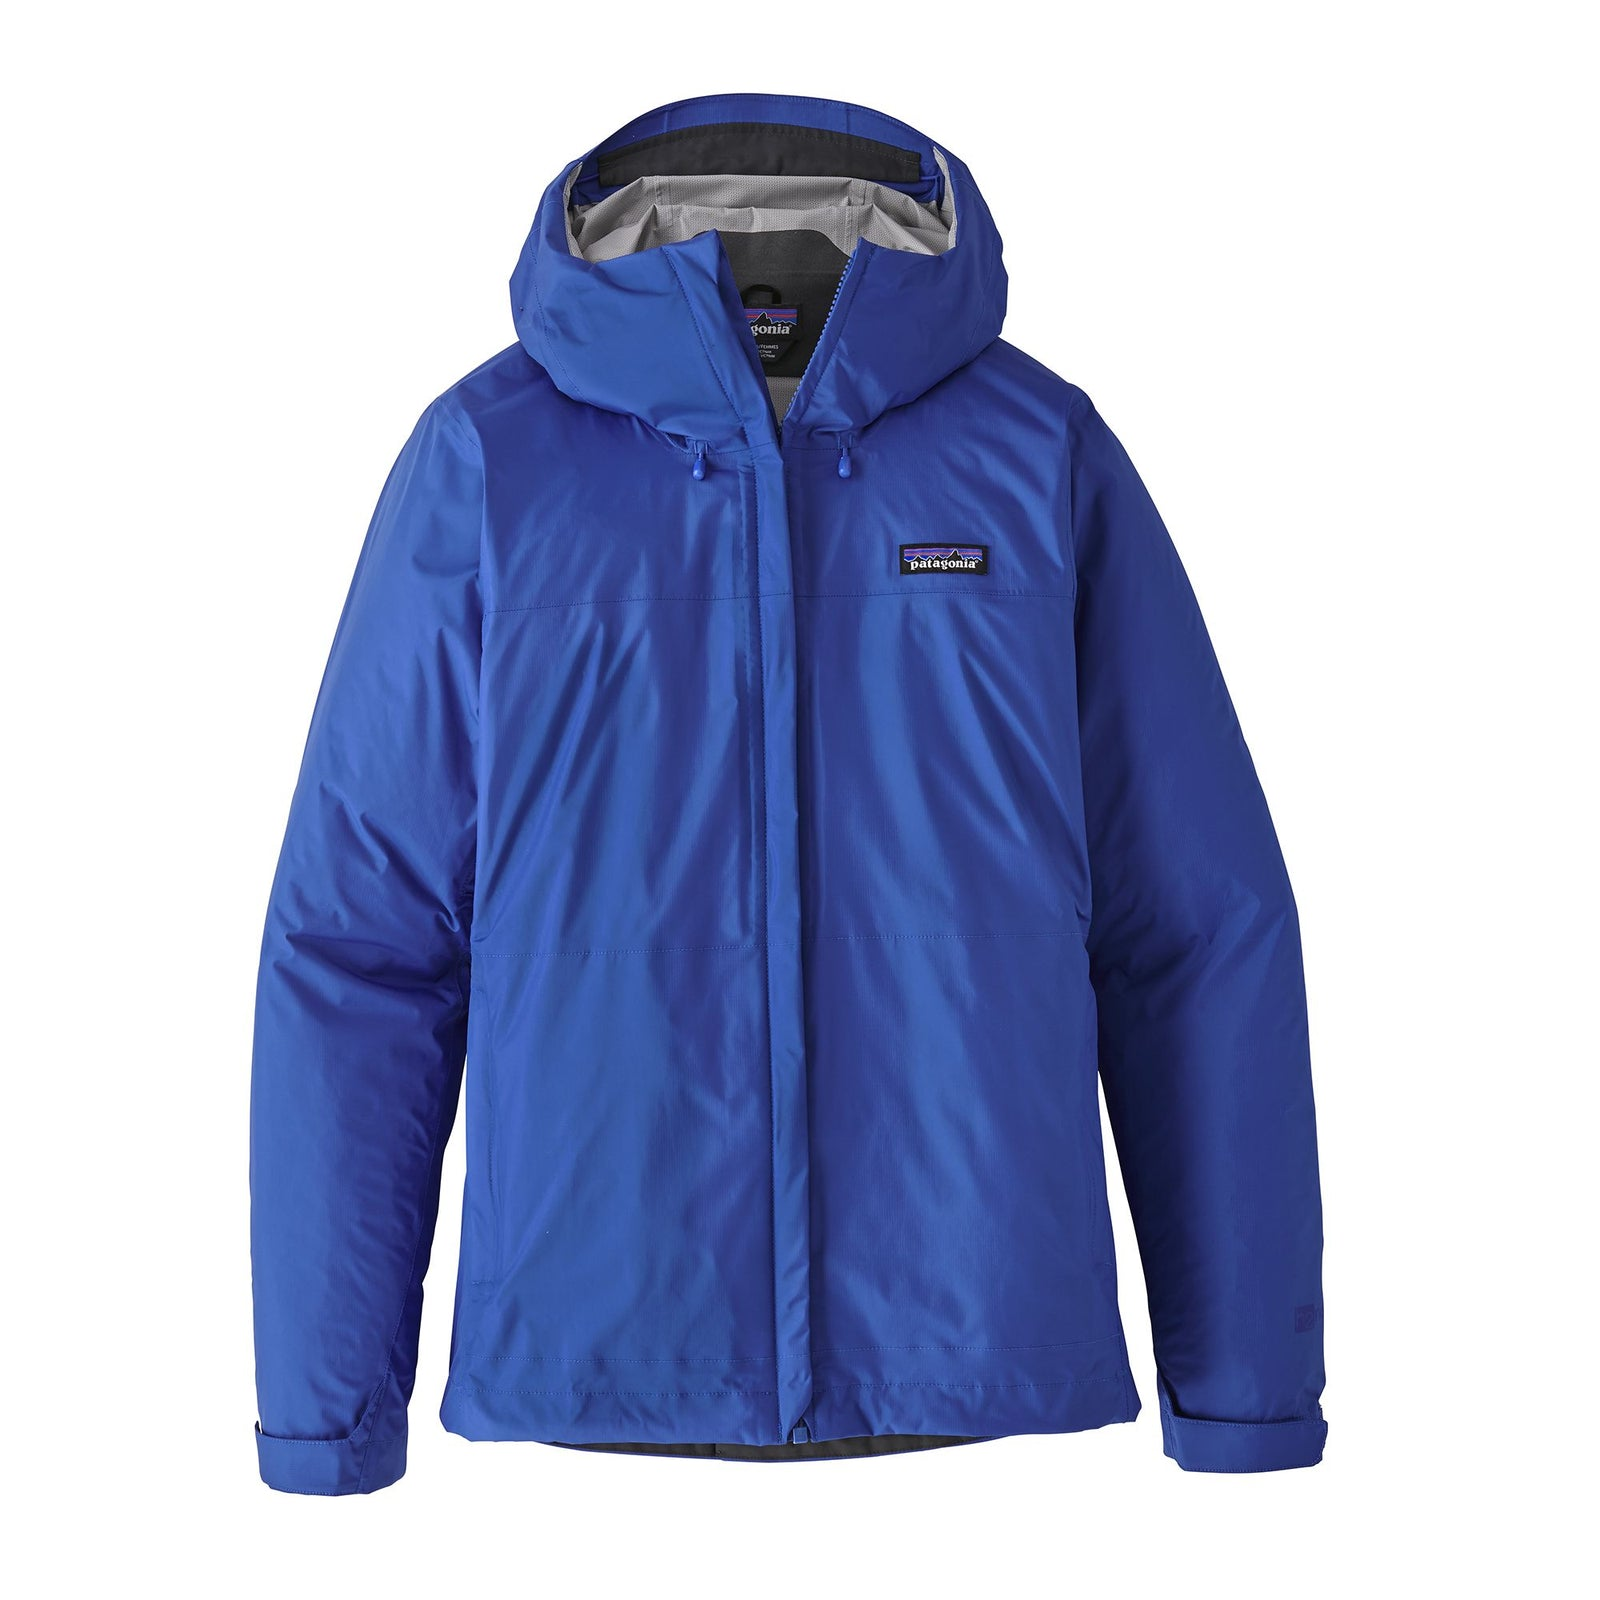 Patagonia Women's Torrentshell Jacket - Trailblazer Outdoors, Pickering